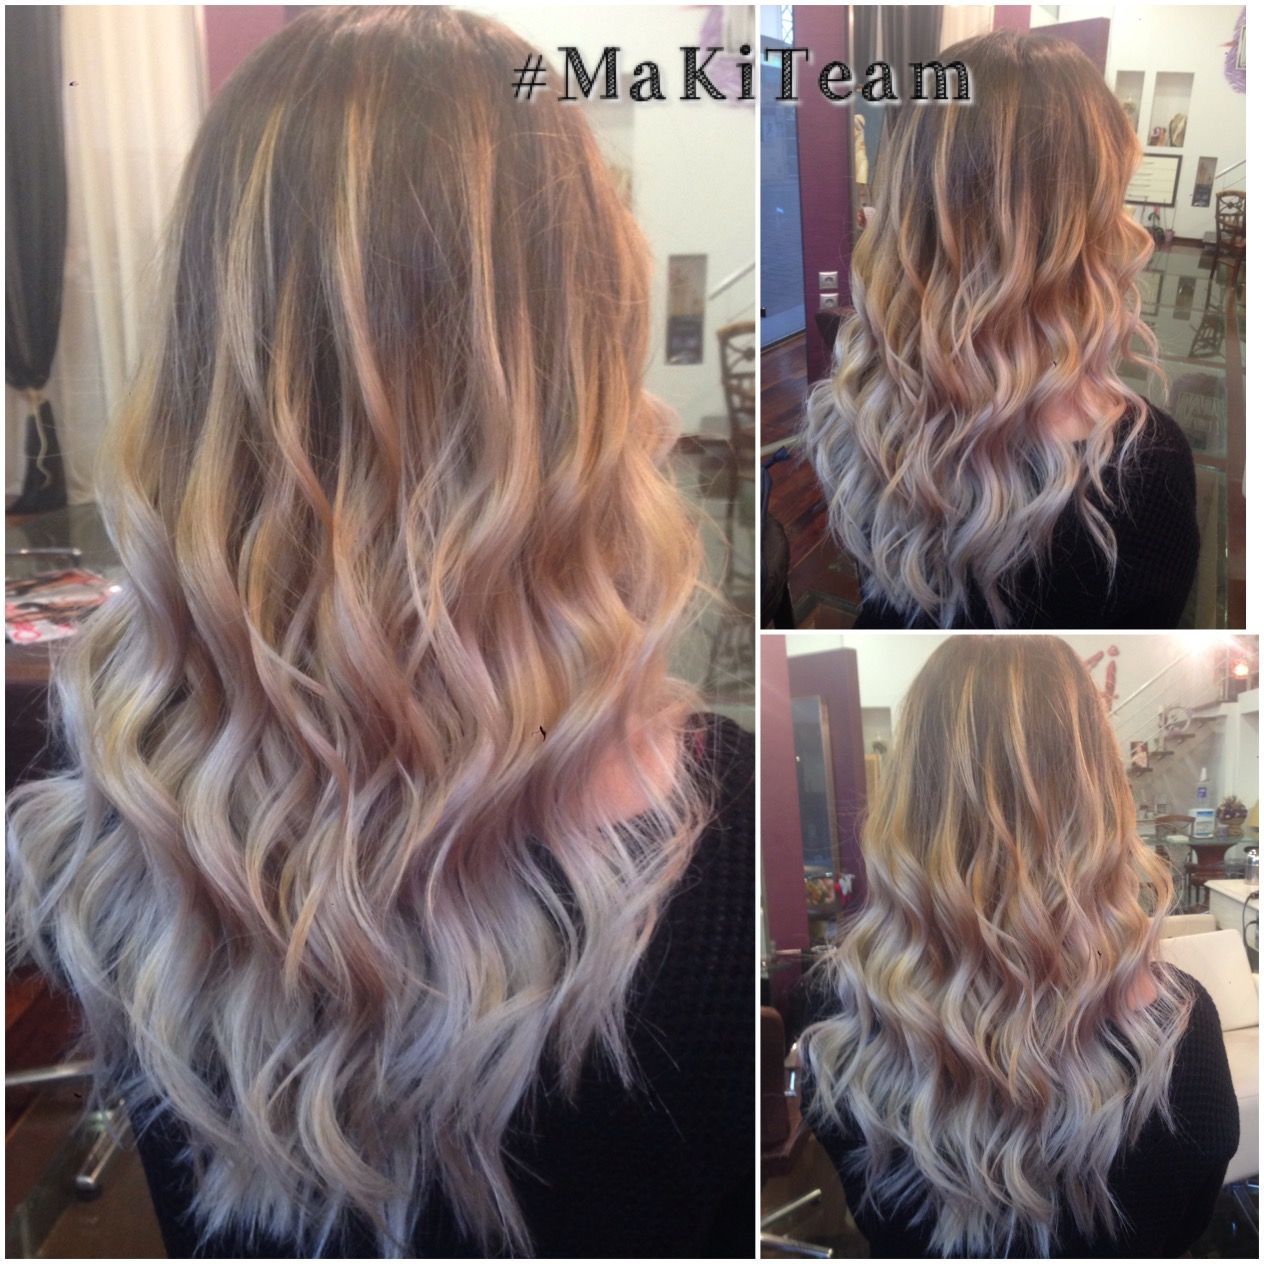 Balayage Blonde Hair With Silver Ends Wavy Long Hair By Maria